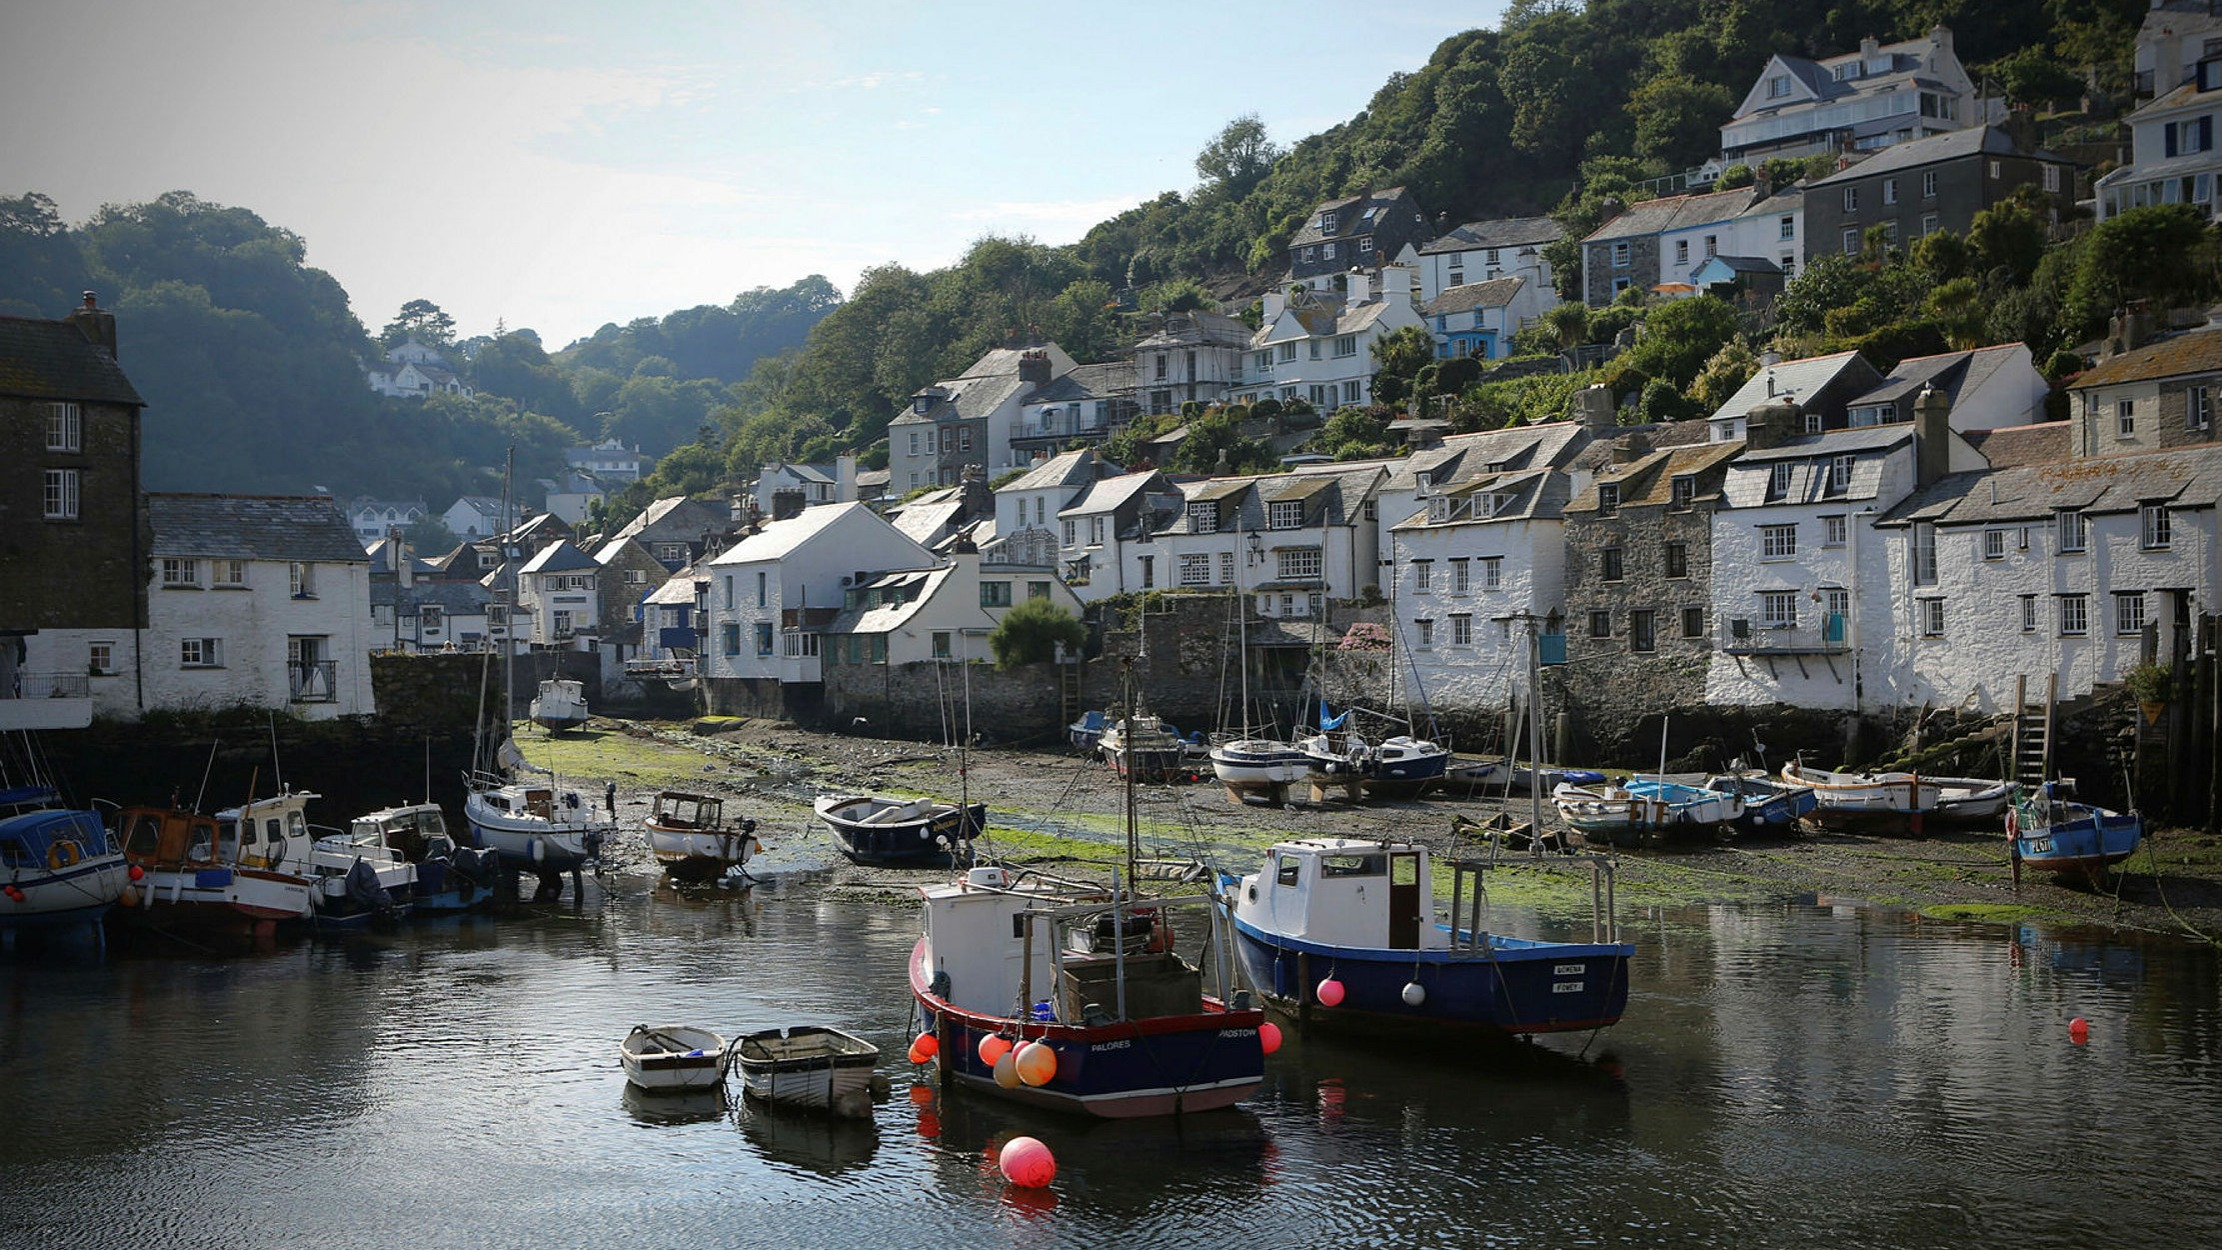 ft.com - James Pickford - Staycation boom drives surge in holiday lets companies